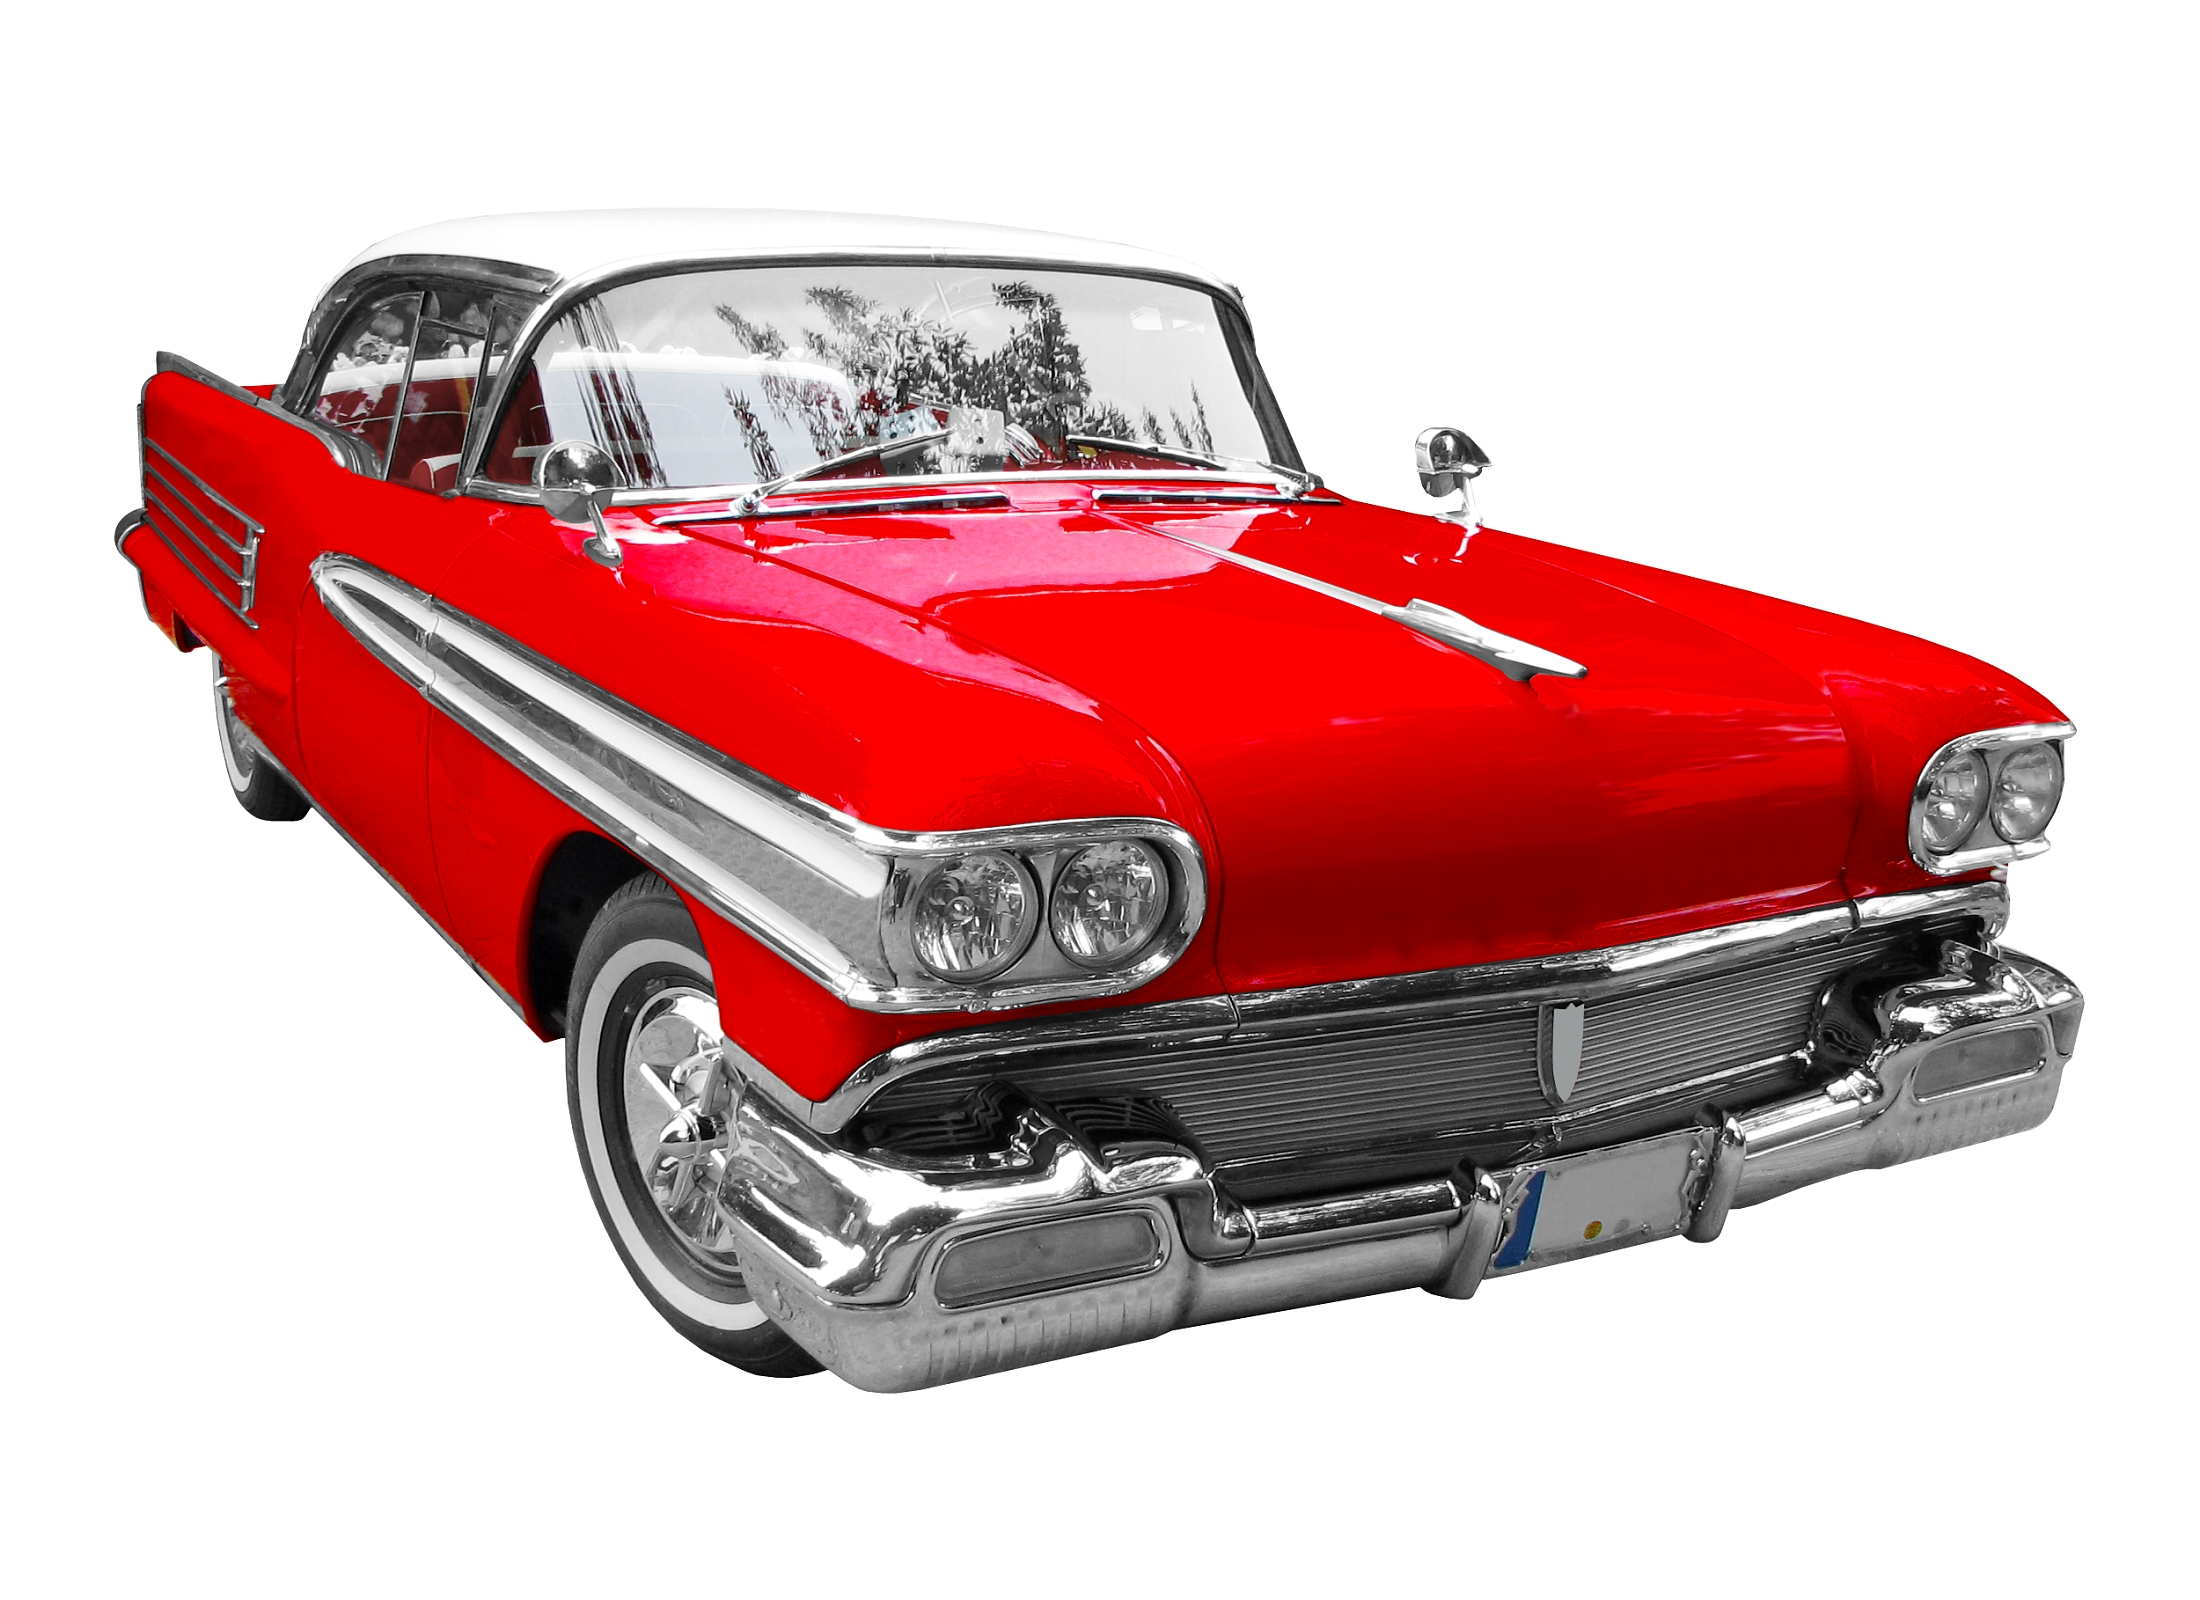 Red classic car clipart.